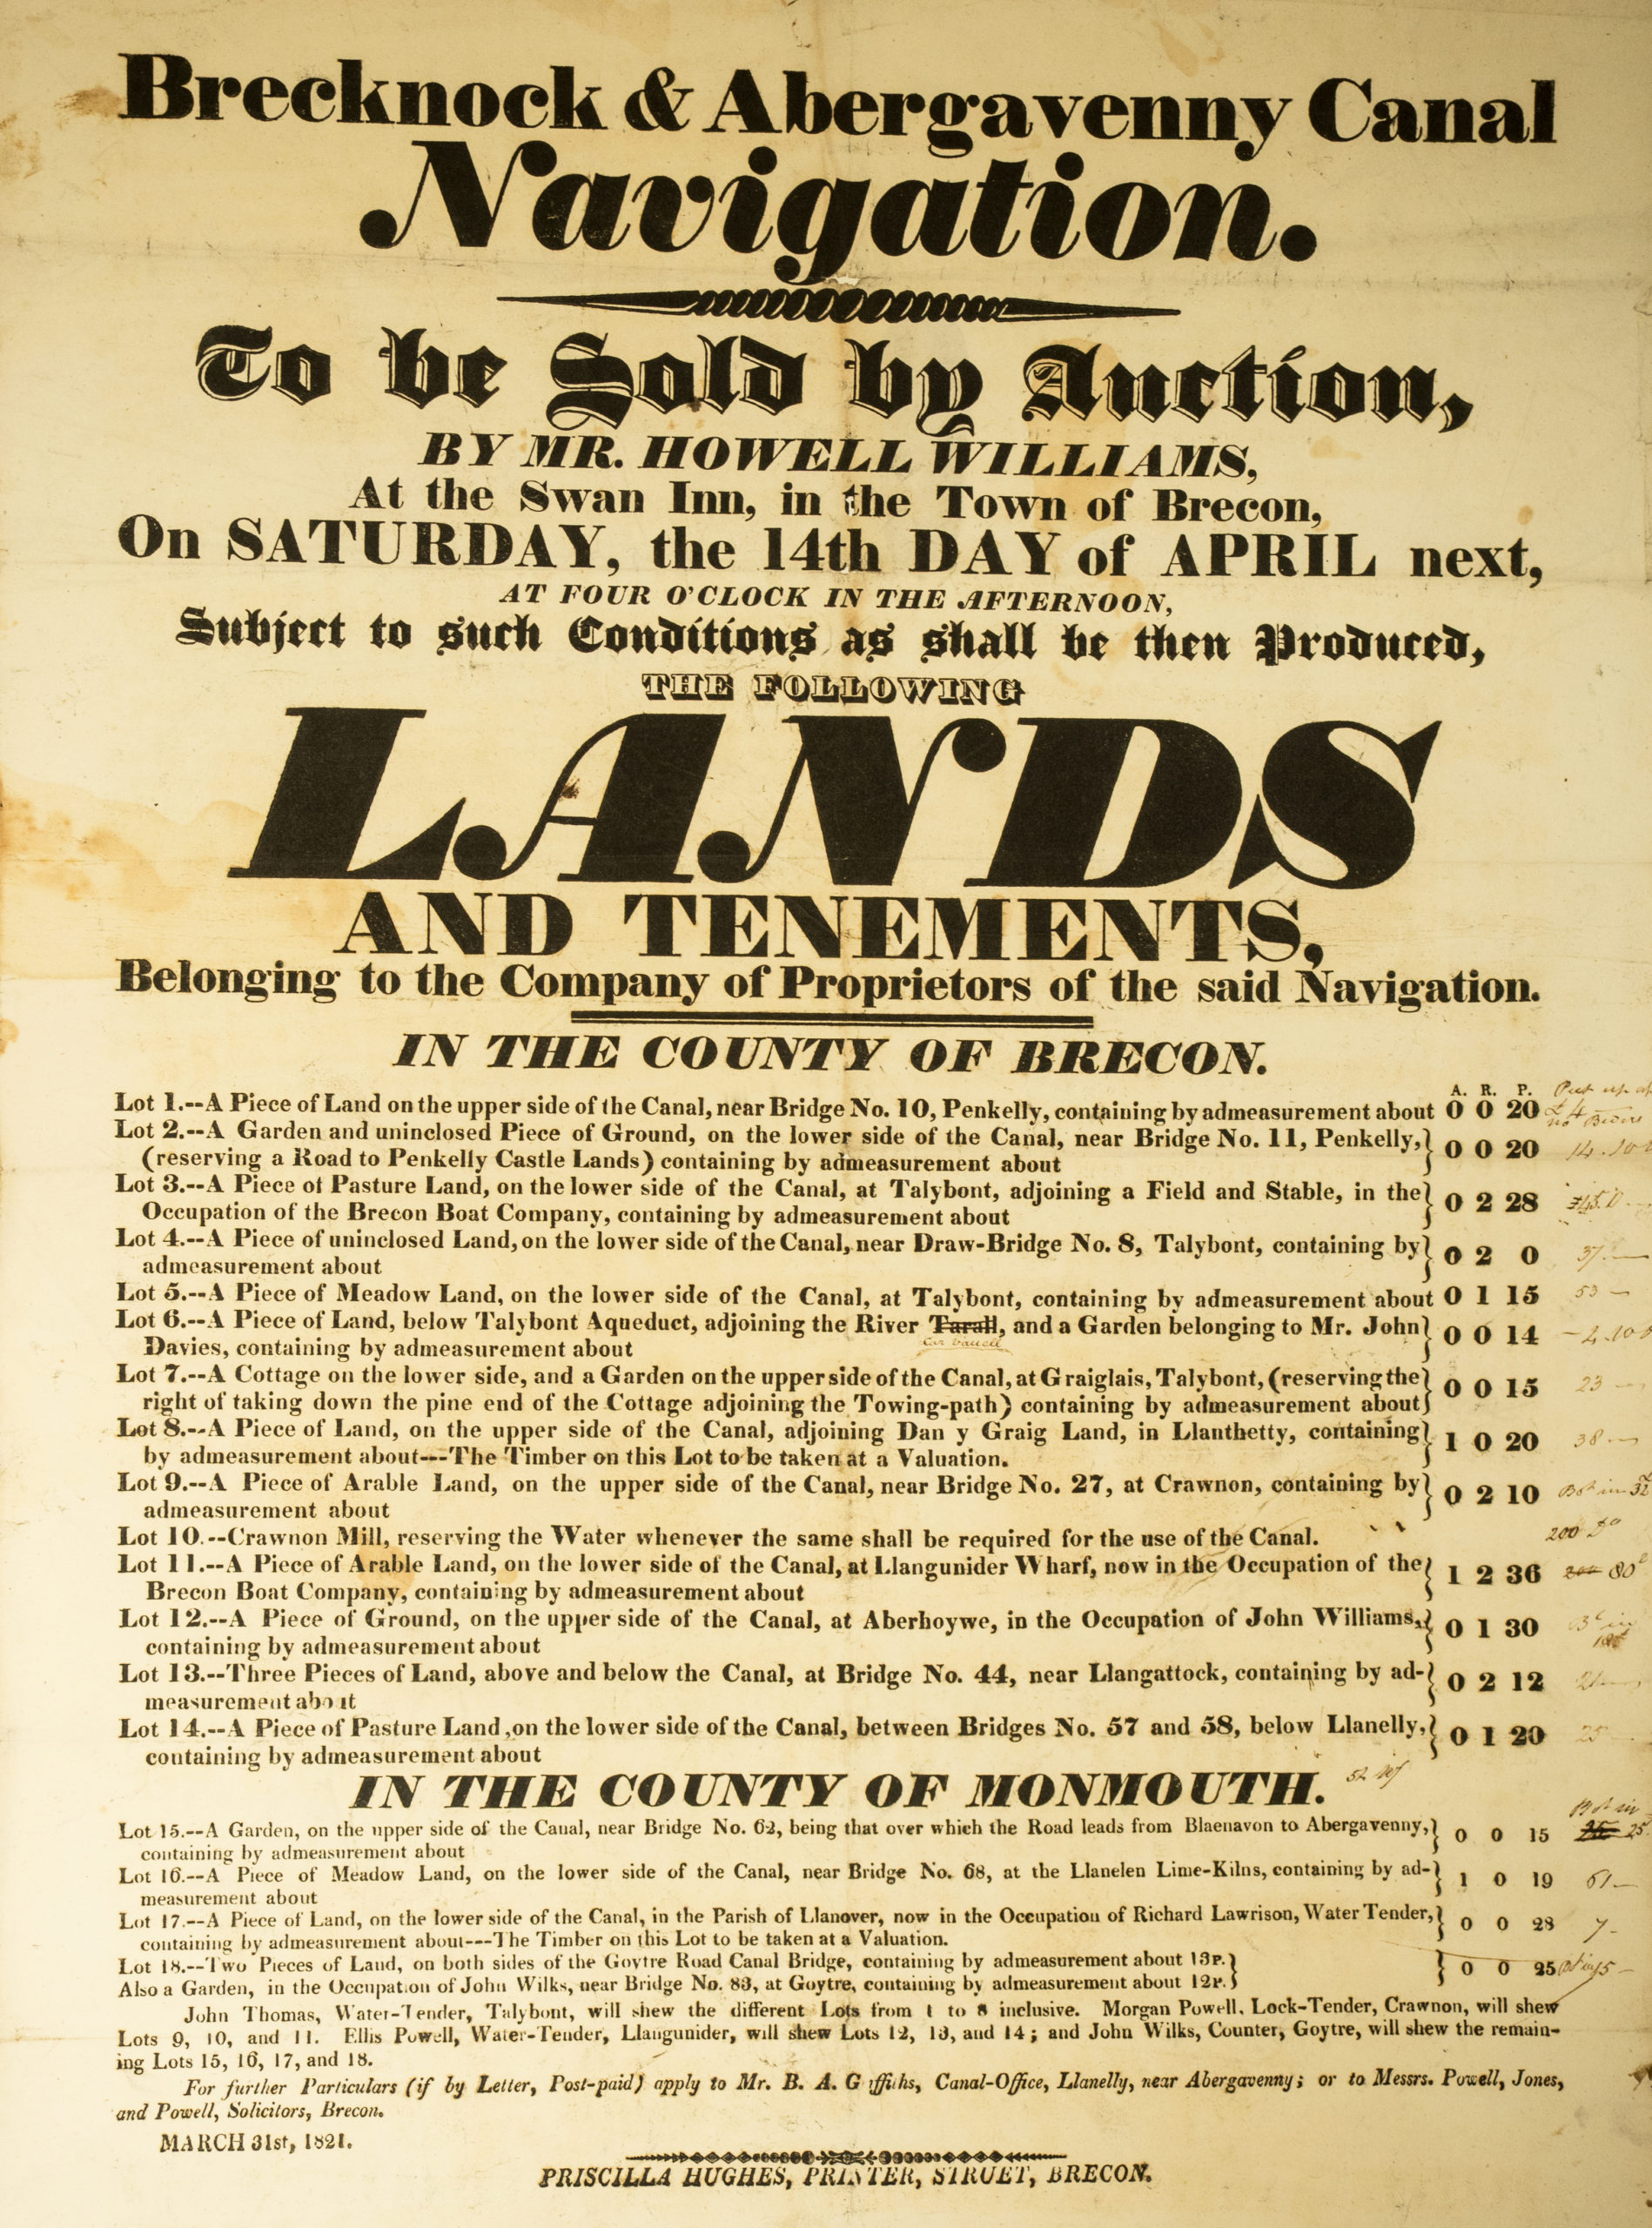 Canal Auction of lands notice 1821